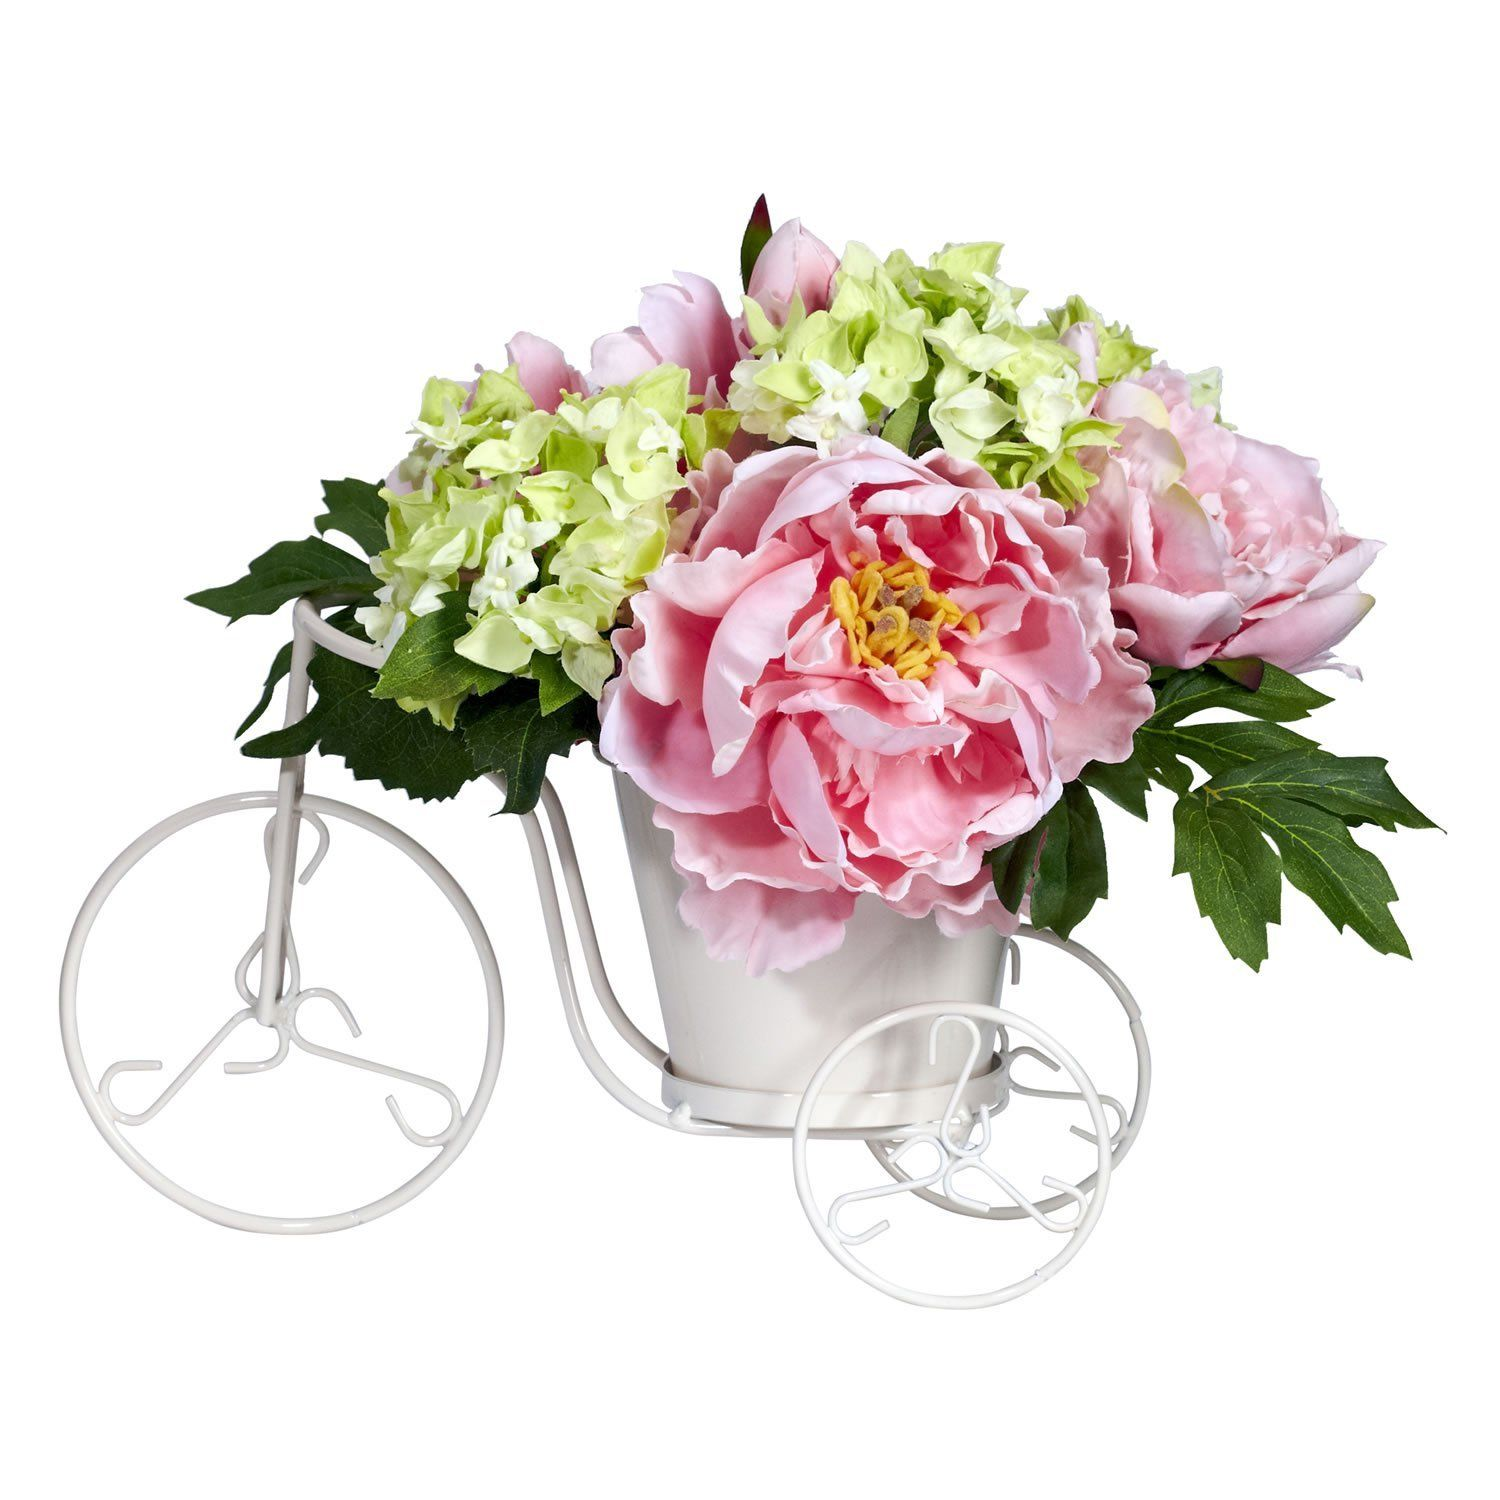 Real Looking Peony Home Decor Diy Pinterest Artificial Flowers